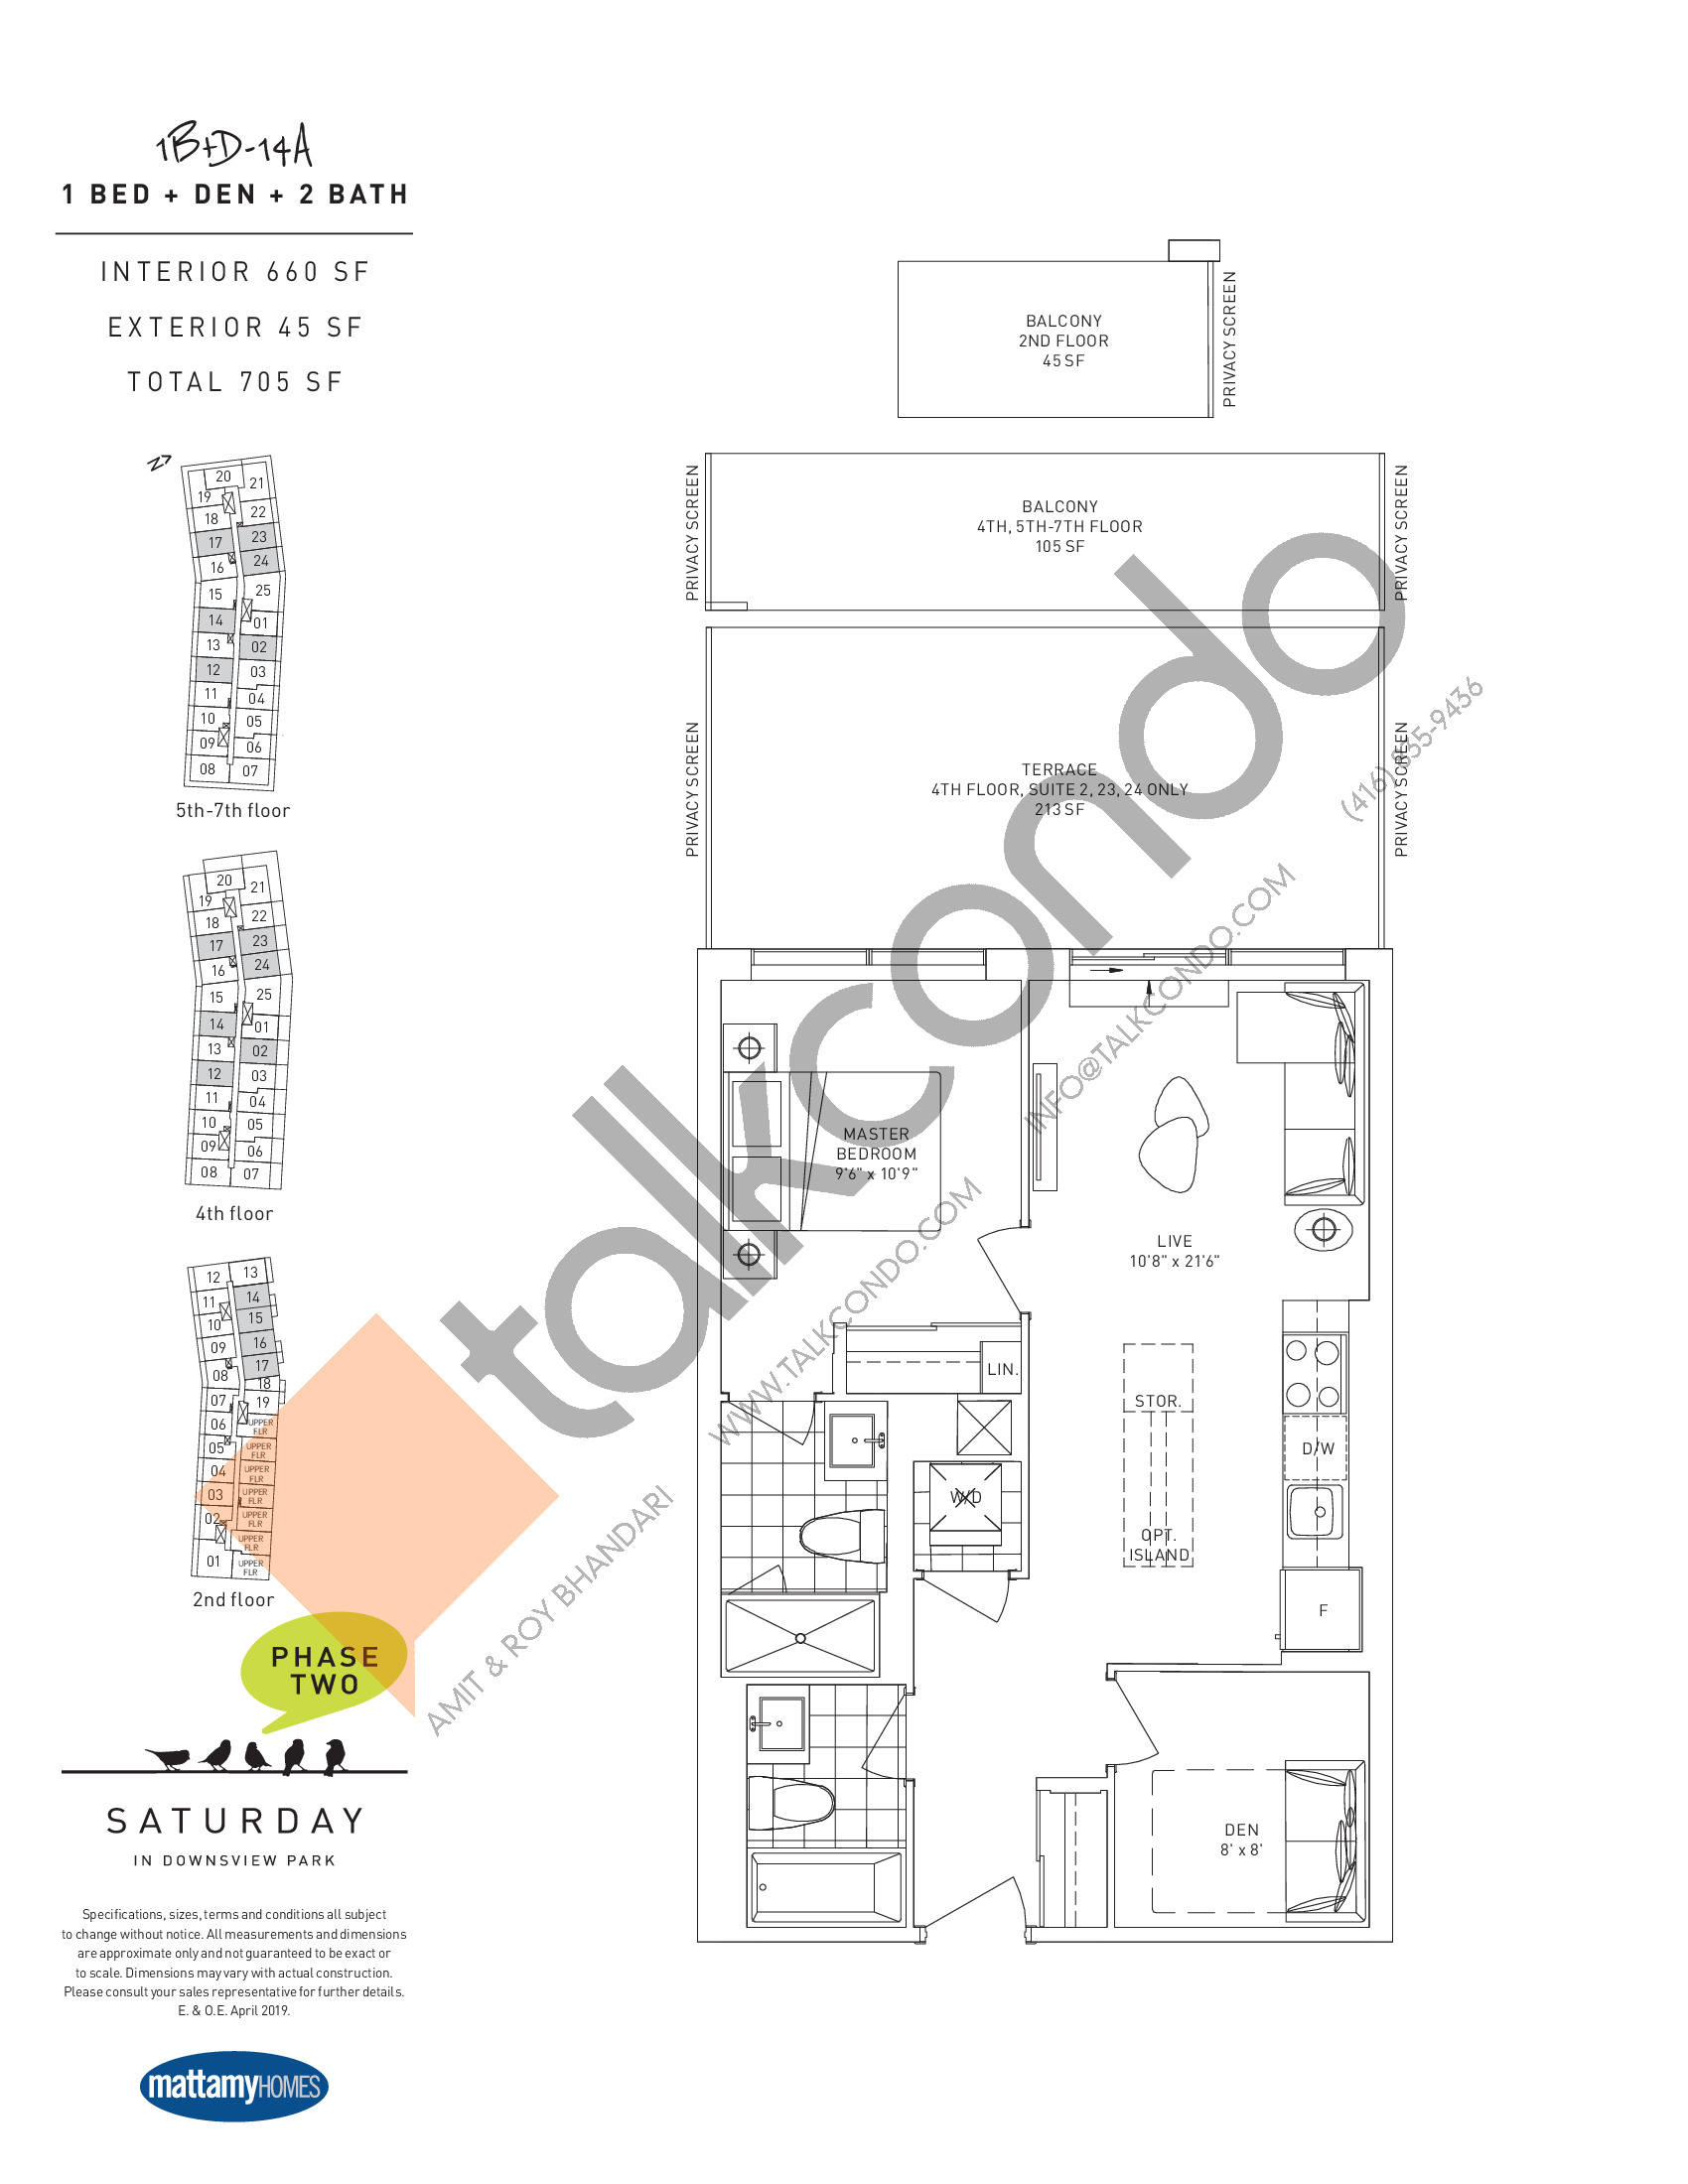 1B+D-14A Floor Plan at Saturday in Downsview Park Phase 2 Condos - 660 sq.ft